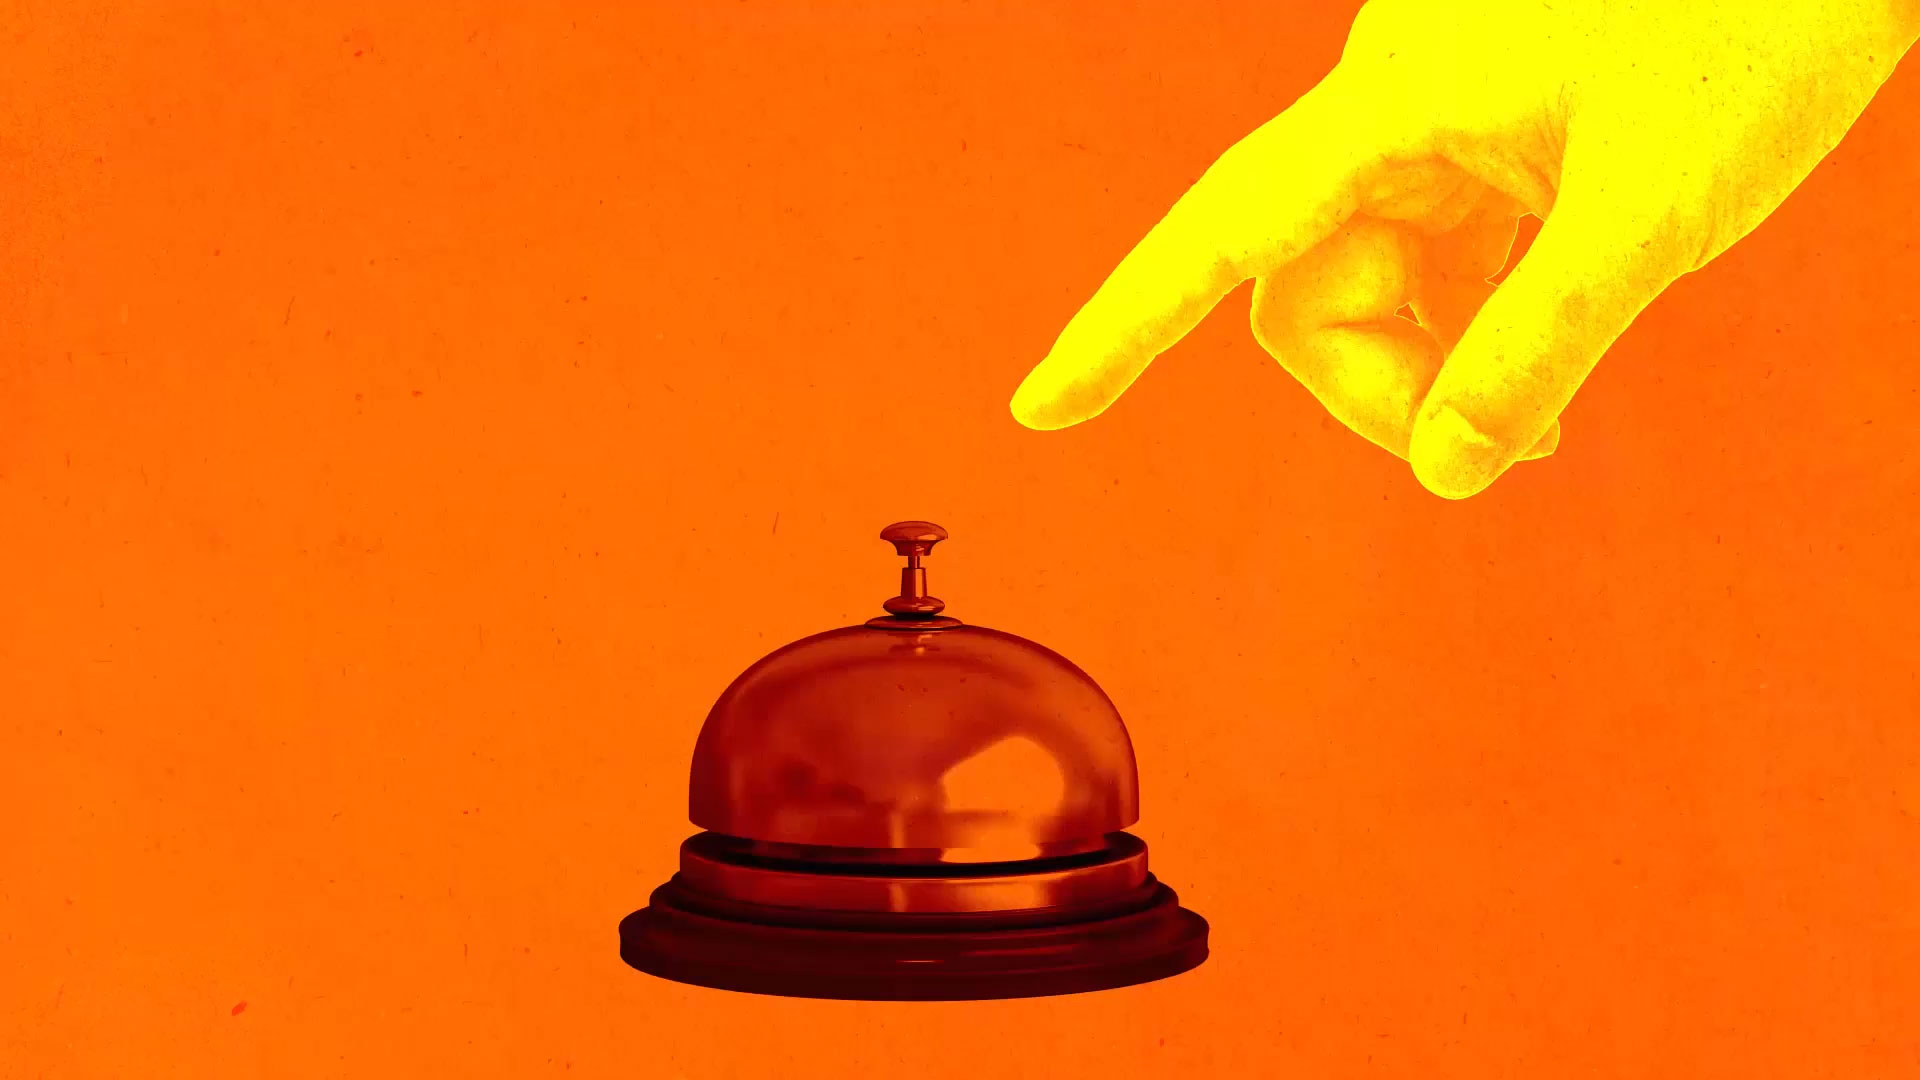 Credentialing Concierge - Click the bell to get started...